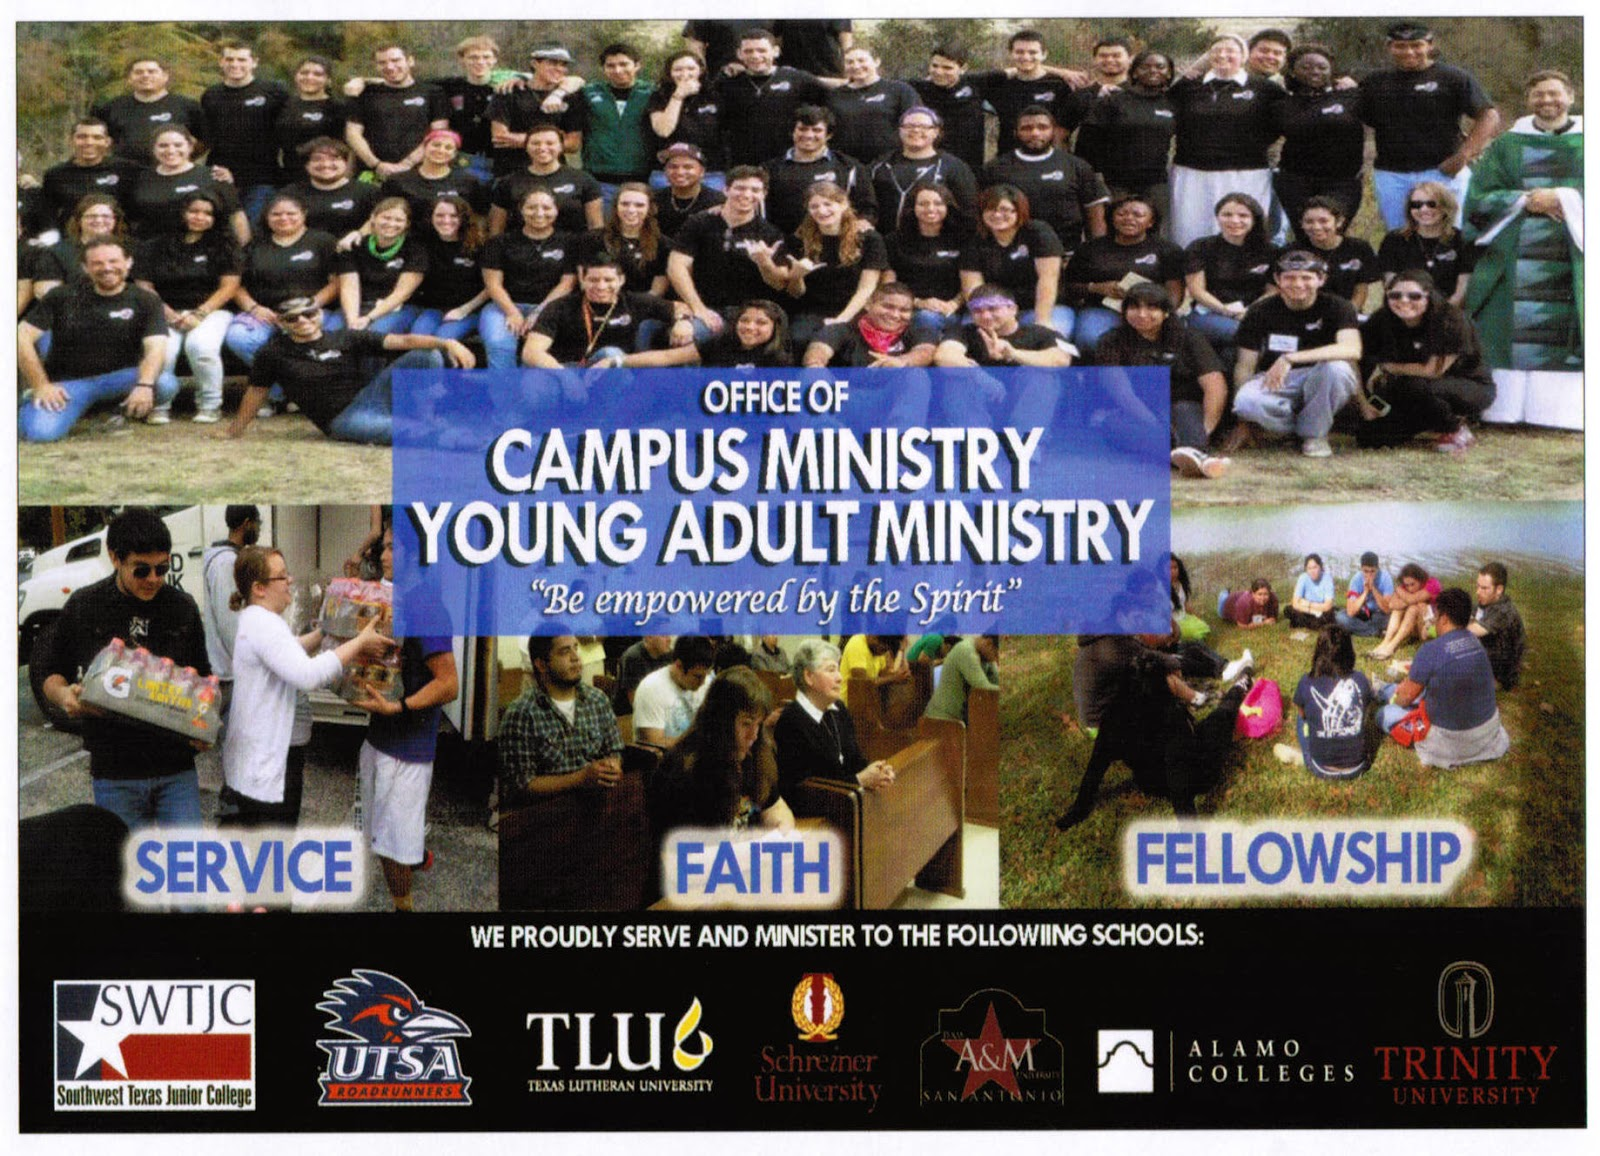 Office of Young Adult Ministry Archdiocese of St Louis